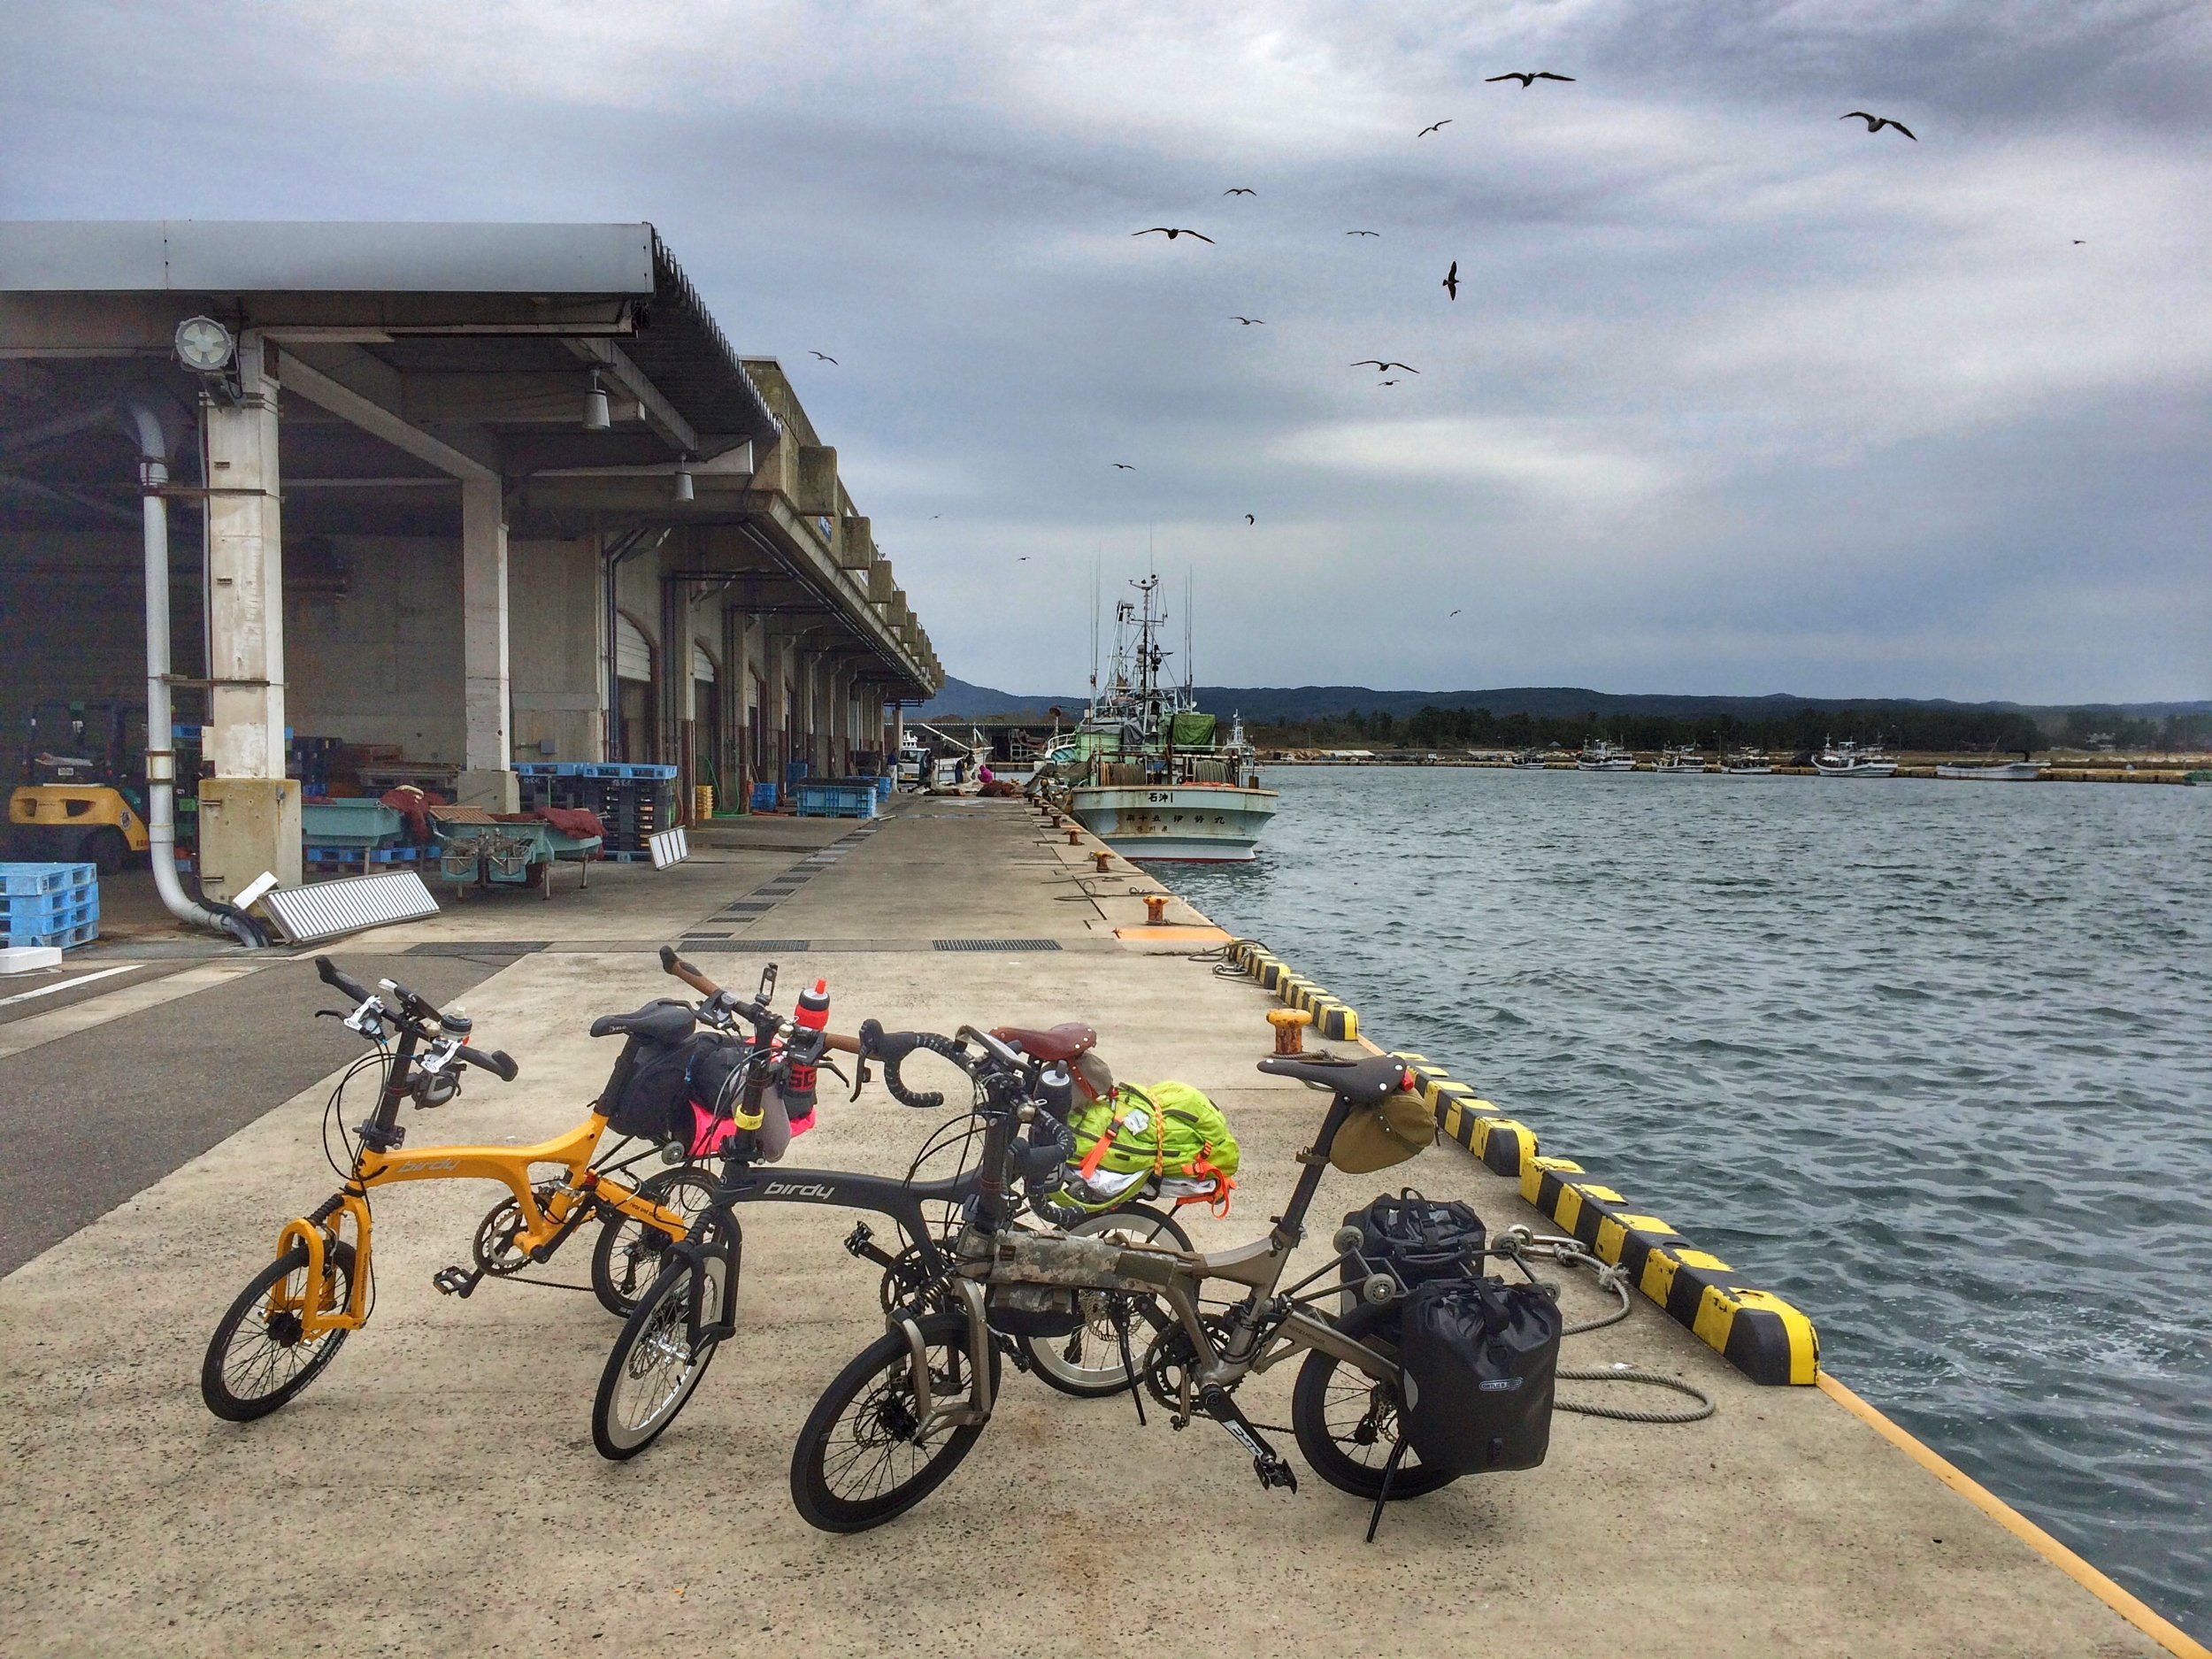 Taking a quick break at a fishing port, right before the rain started.